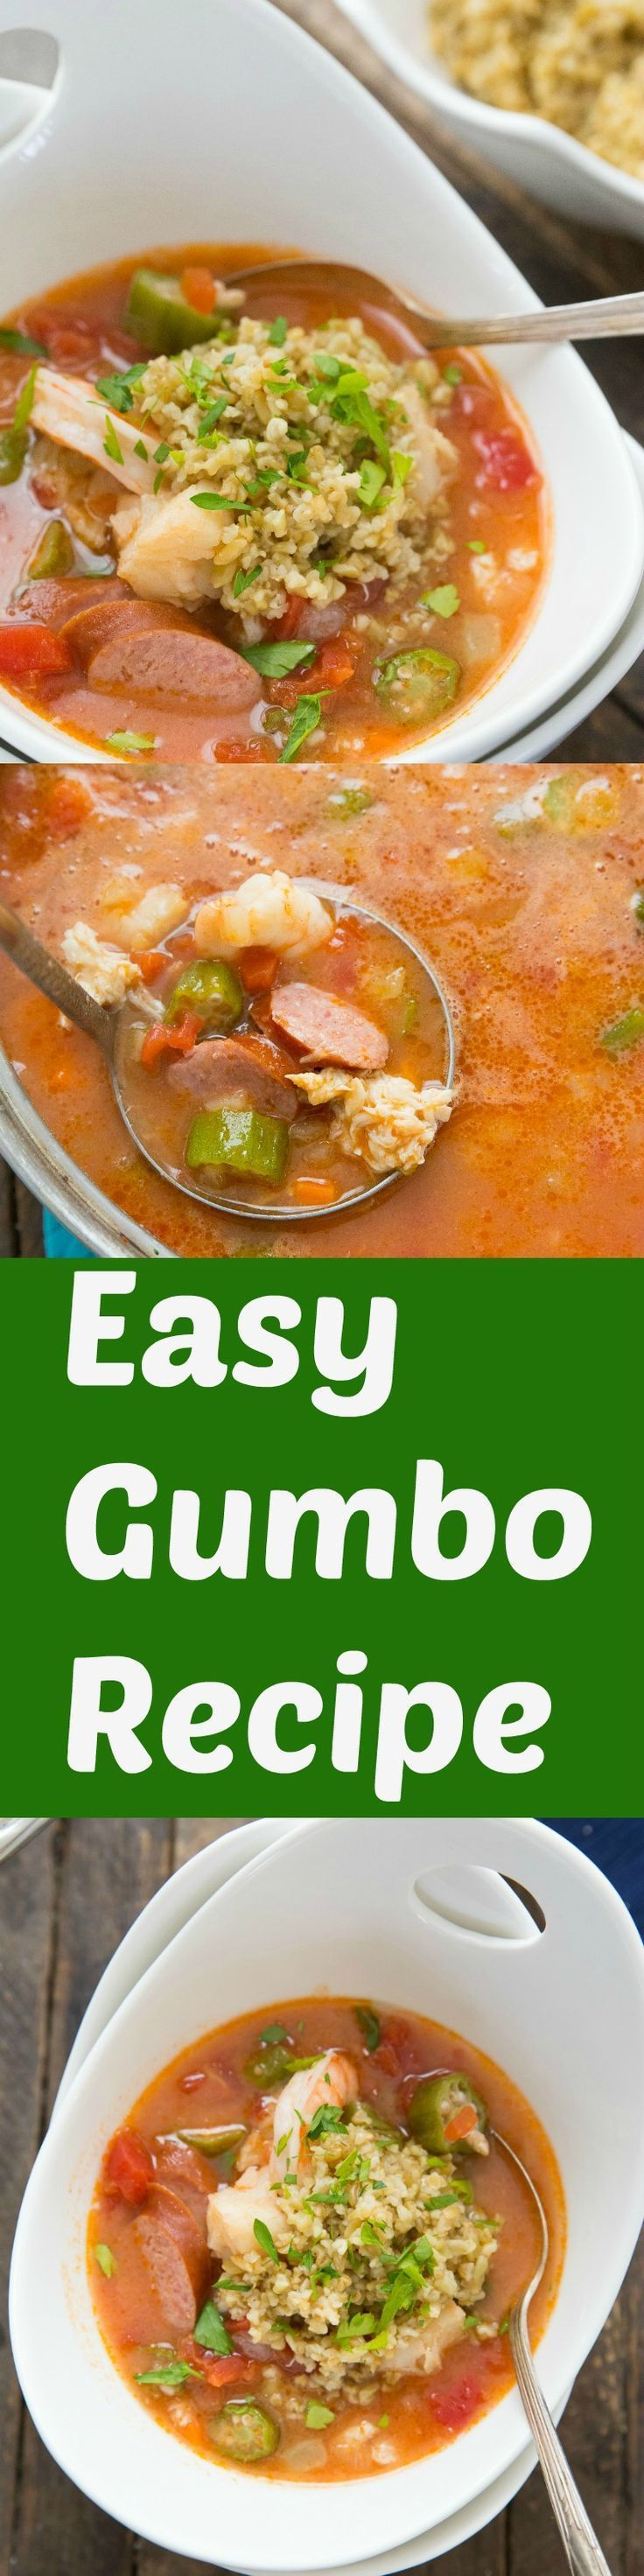 An easy gumbo recipe that is sure to please a crowd! This recipe is filled with veggies and seafood! It is hearty and delicious! via @Lemonsforlulu